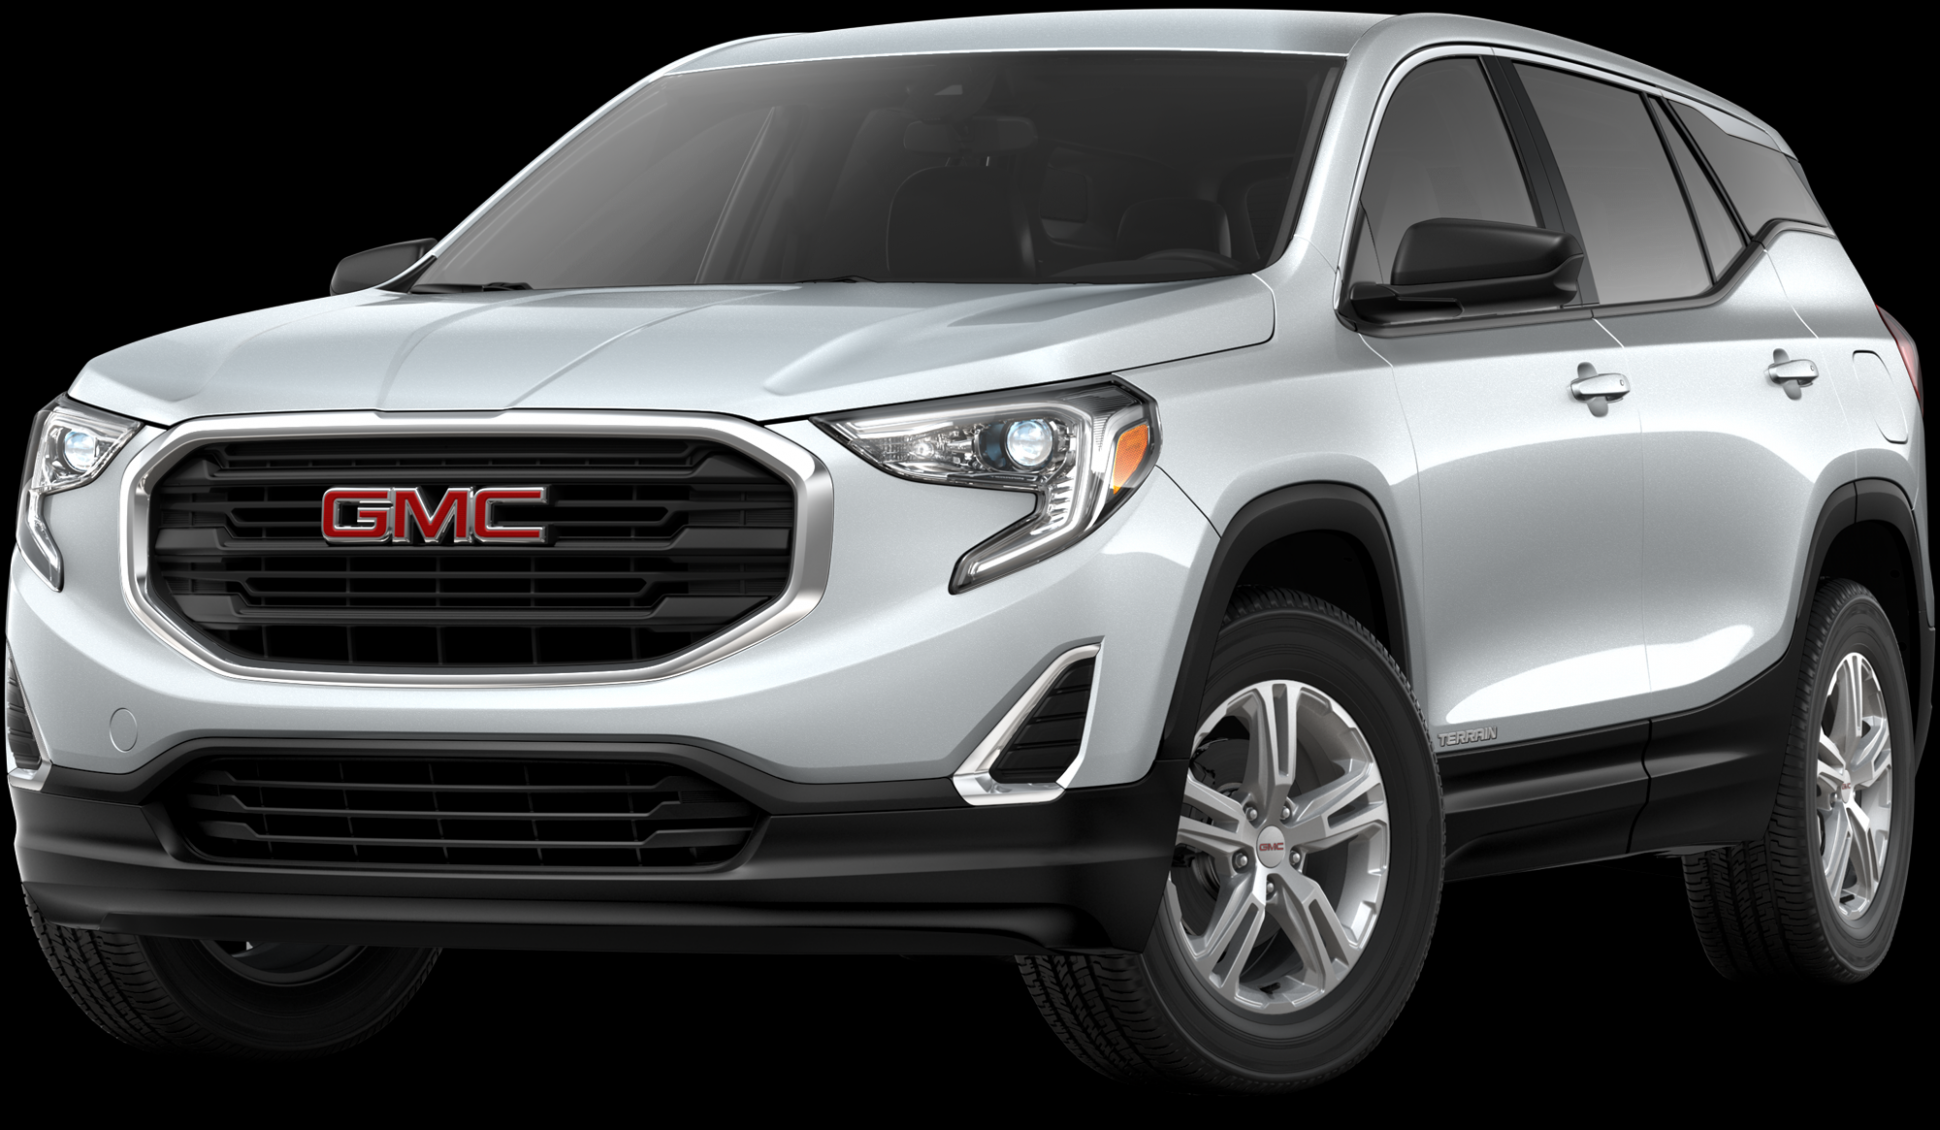 8 GMC Terrain Incentives, Specials & Offers in Find A Location ..